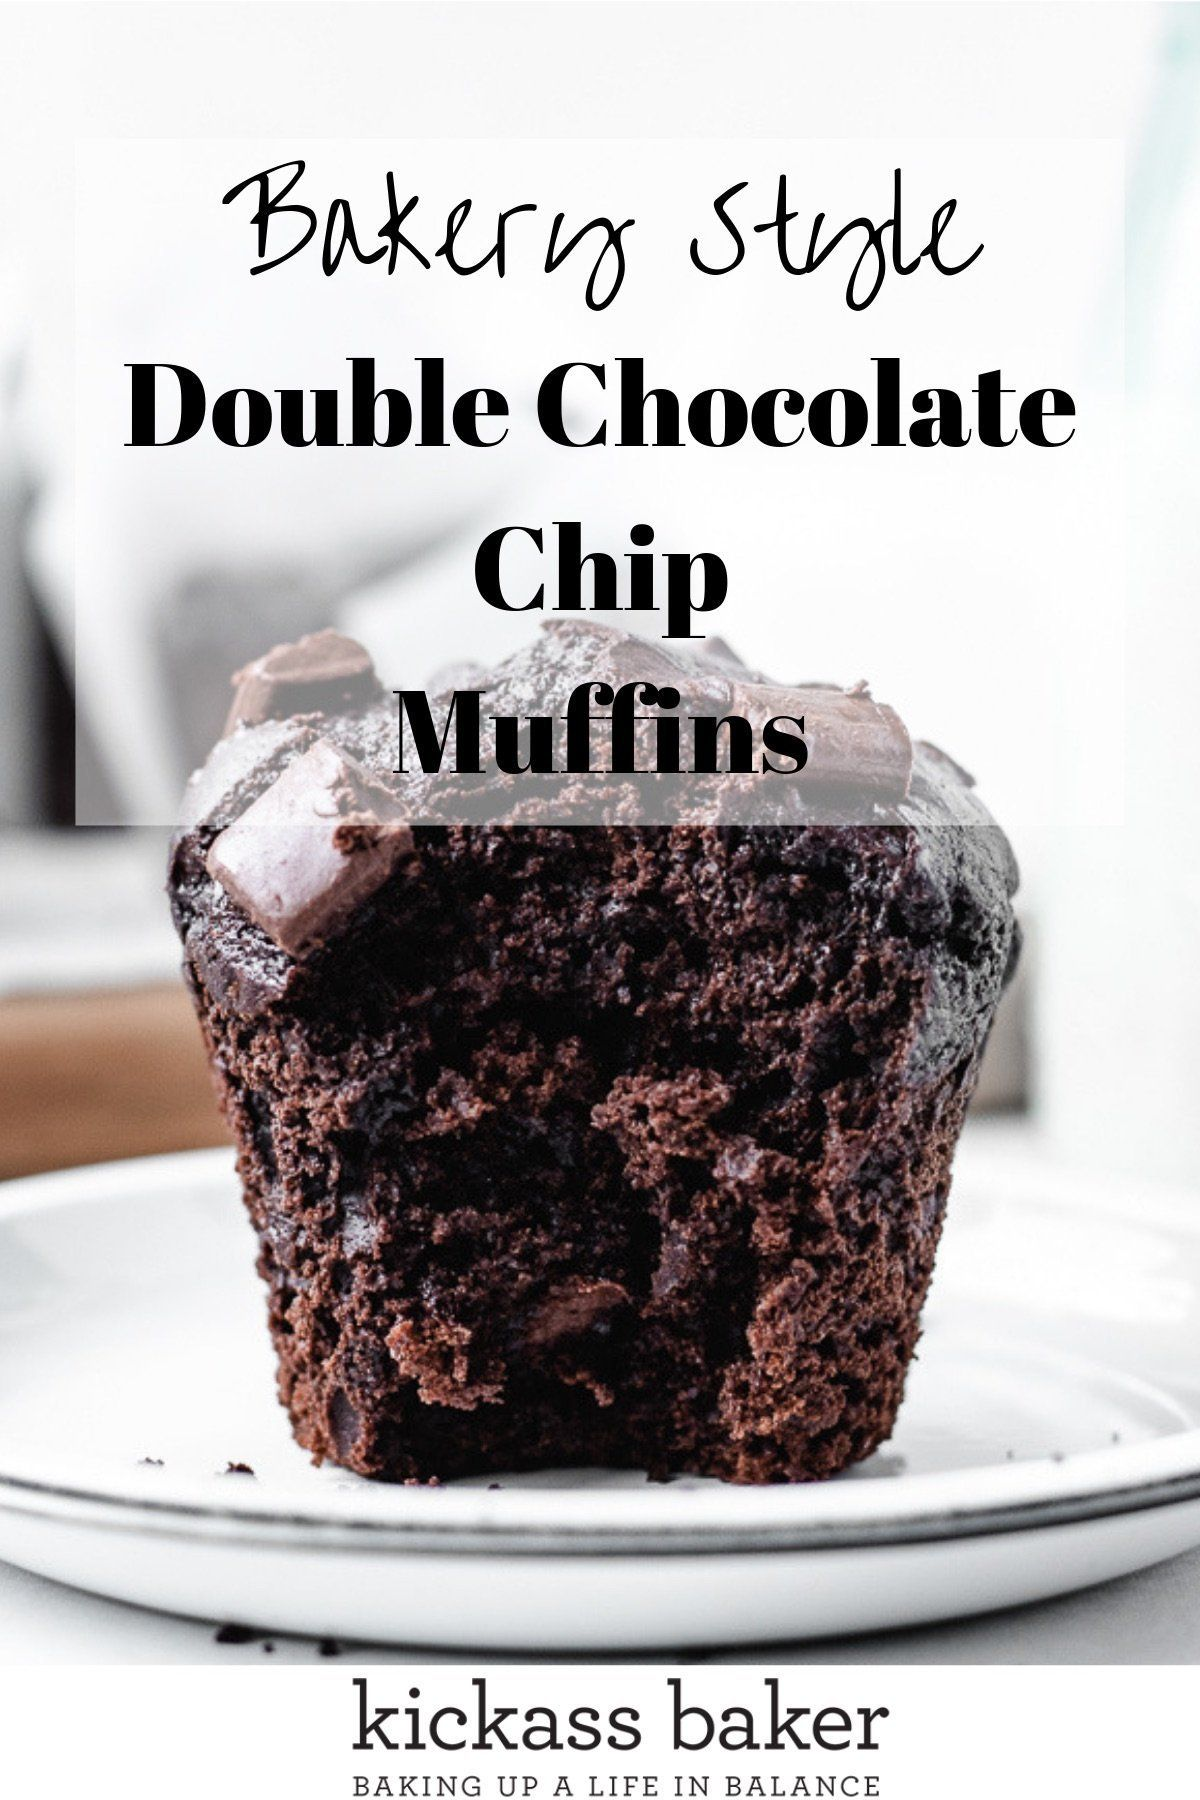 Bakery Style Double Chocolate Chip Muffins | kickassbaker.com #doublechocolatemuffins #moistchocolatemuffins #muffinsrecipe #chocolatechipmuffins #bakerystylemuffins #nutfreemuffins